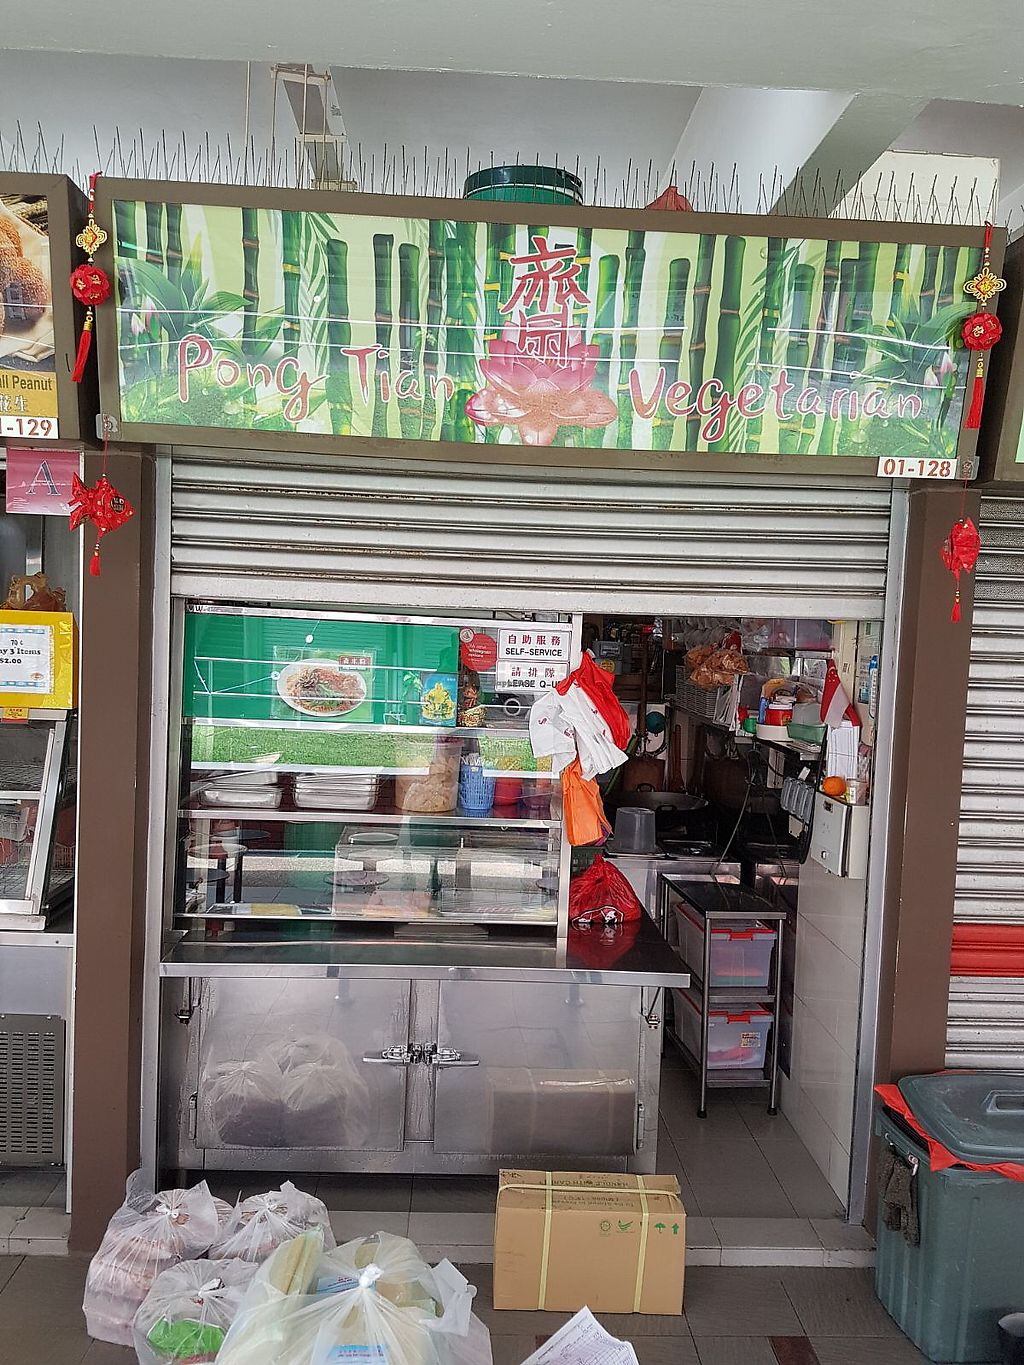 """Photo of Pong Tian Vegetarian   by <a href=""""/members/profile/CherylQuincy"""">CherylQuincy</a> <br/>Stall front <br/> March 12, 2018  - <a href='/contact/abuse/image/101584/369539'>Report</a>"""